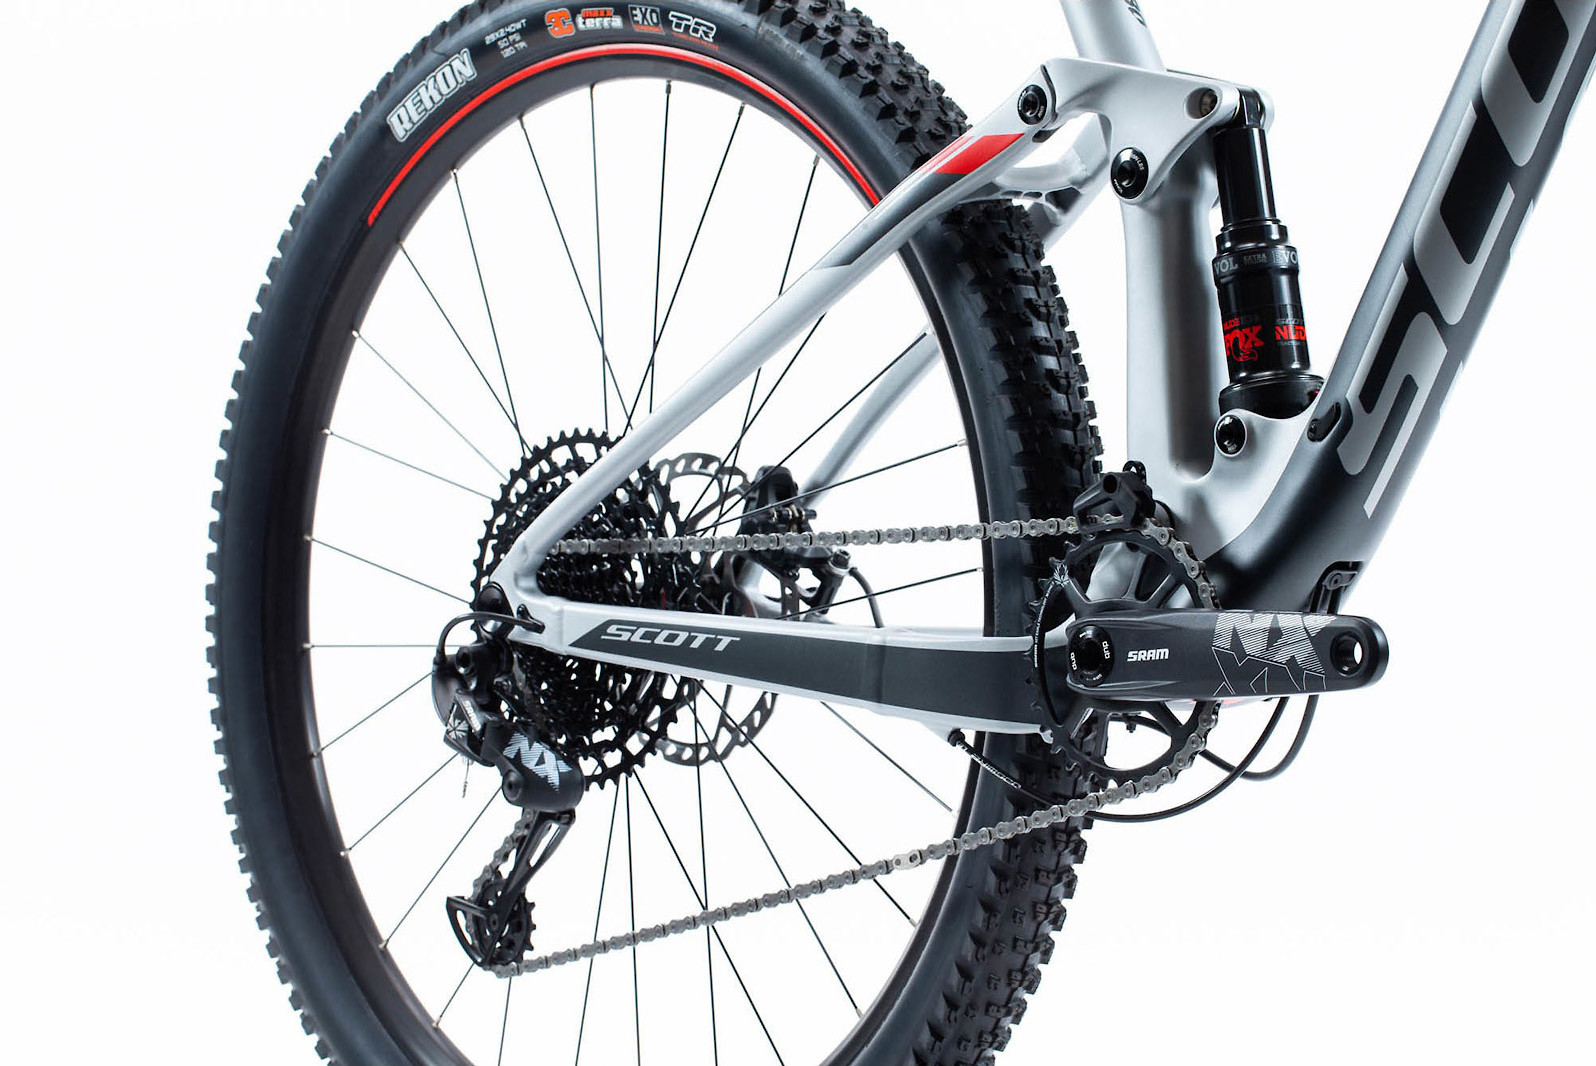 66ee56b8840 2019 Scott Spark 930 Bike - Reviews, Comparisons, Specs - Mountain ...